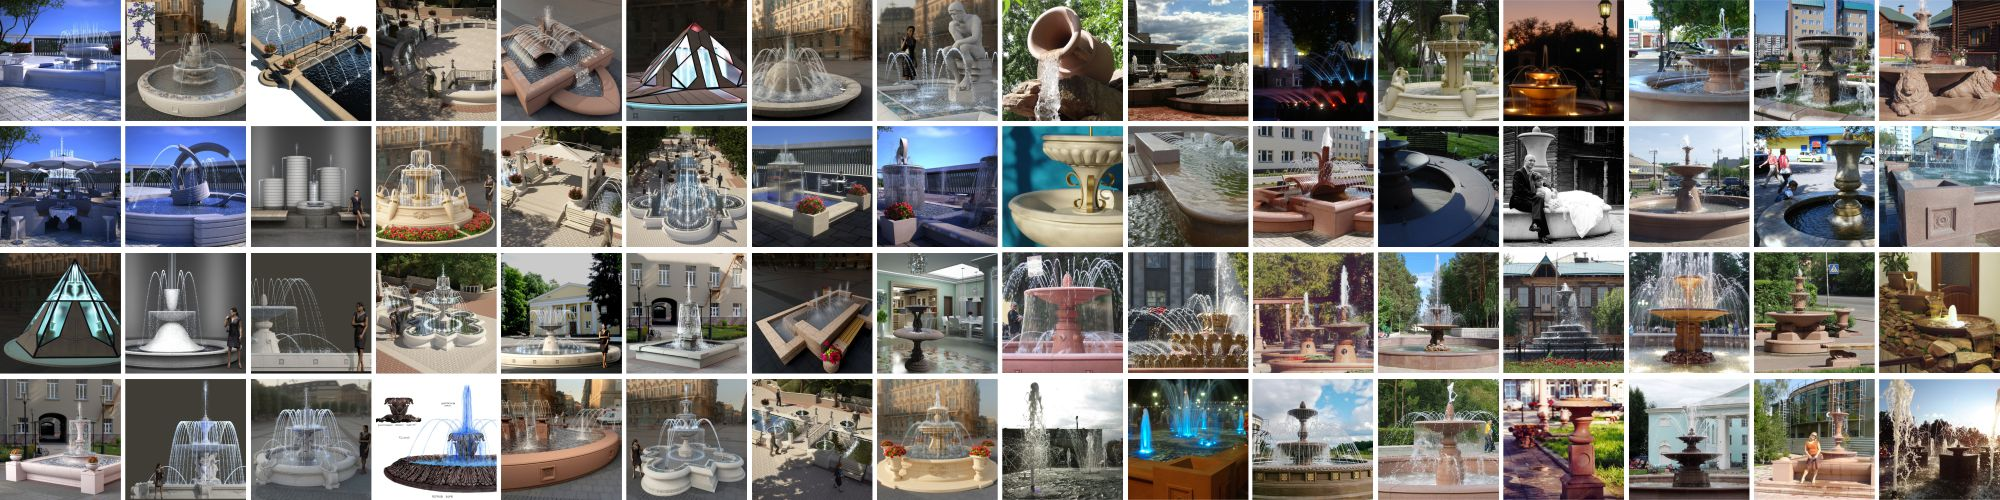 mazormedia design fountains